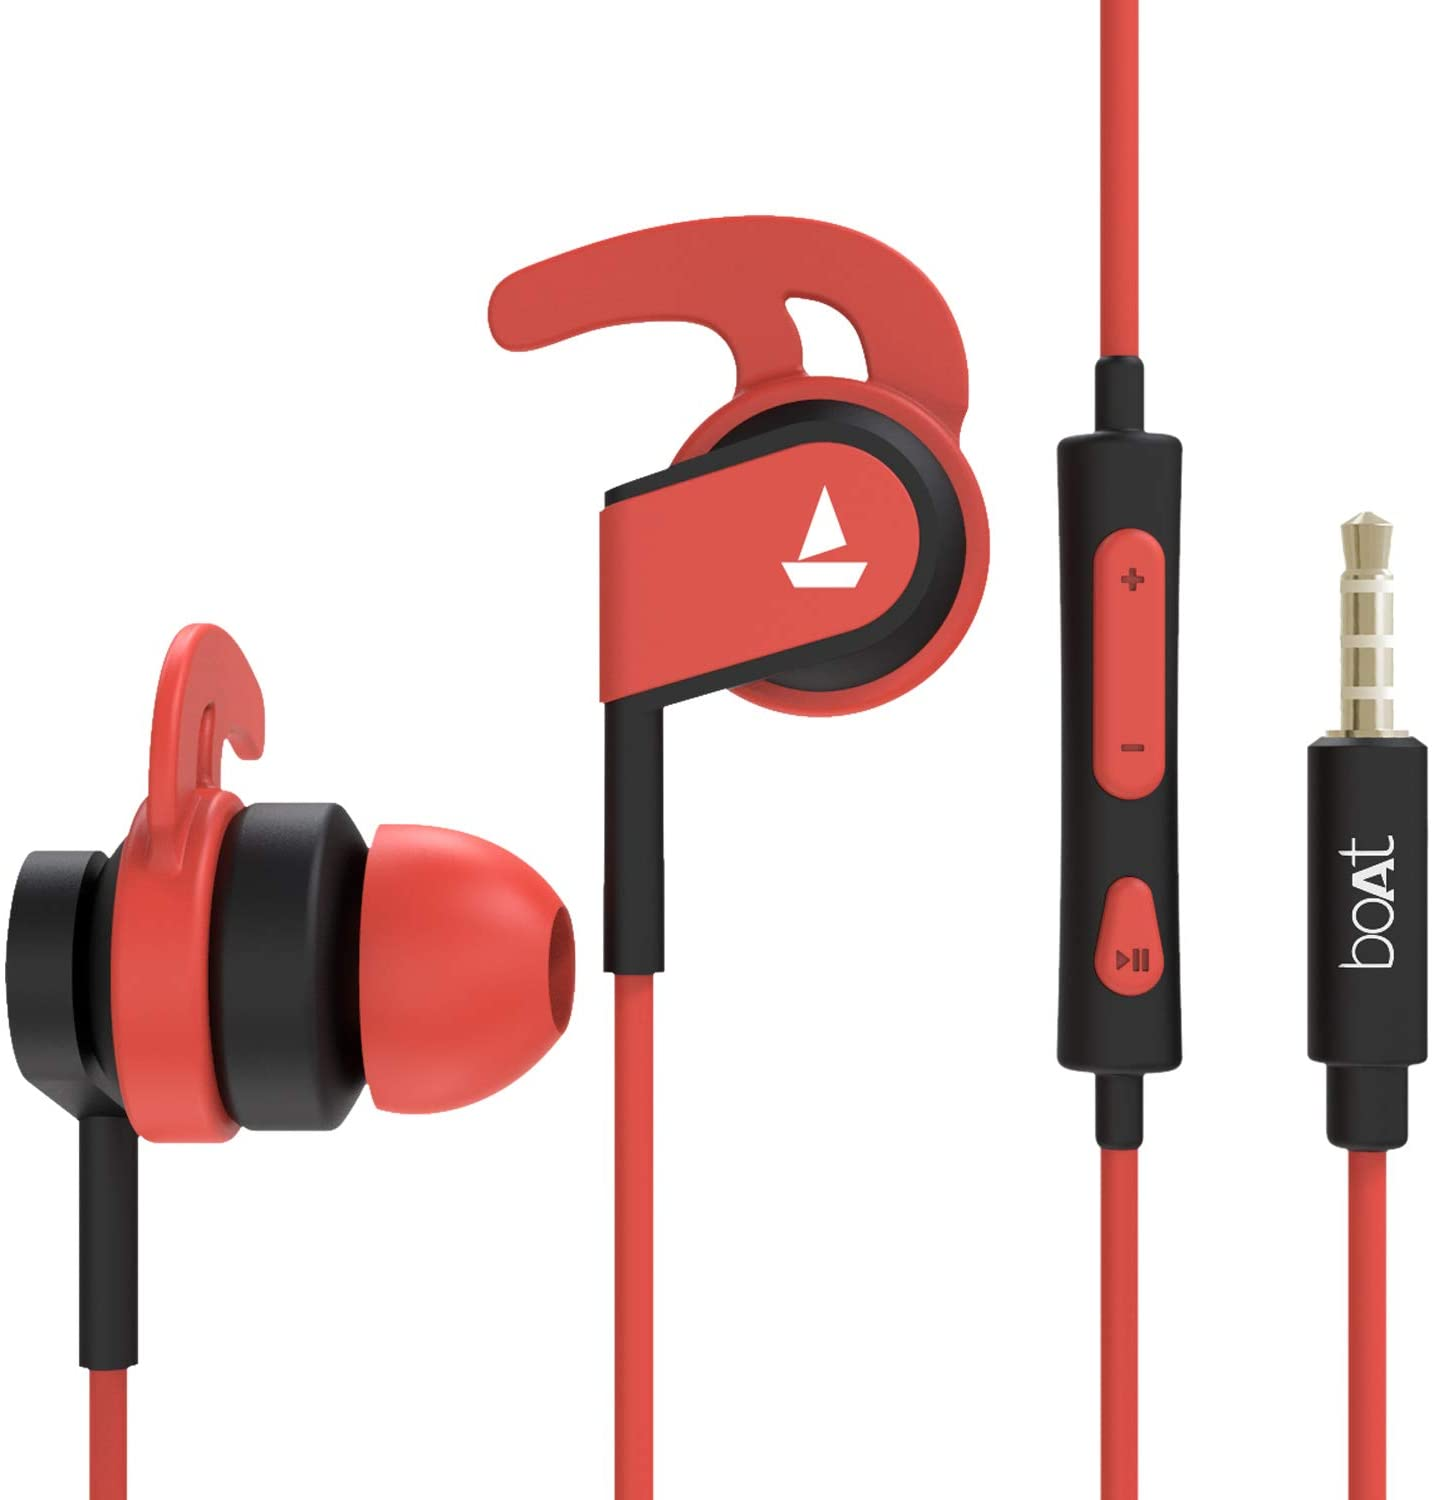 boAt Bassheads 242 in-Ear Wired Earphones with Mic